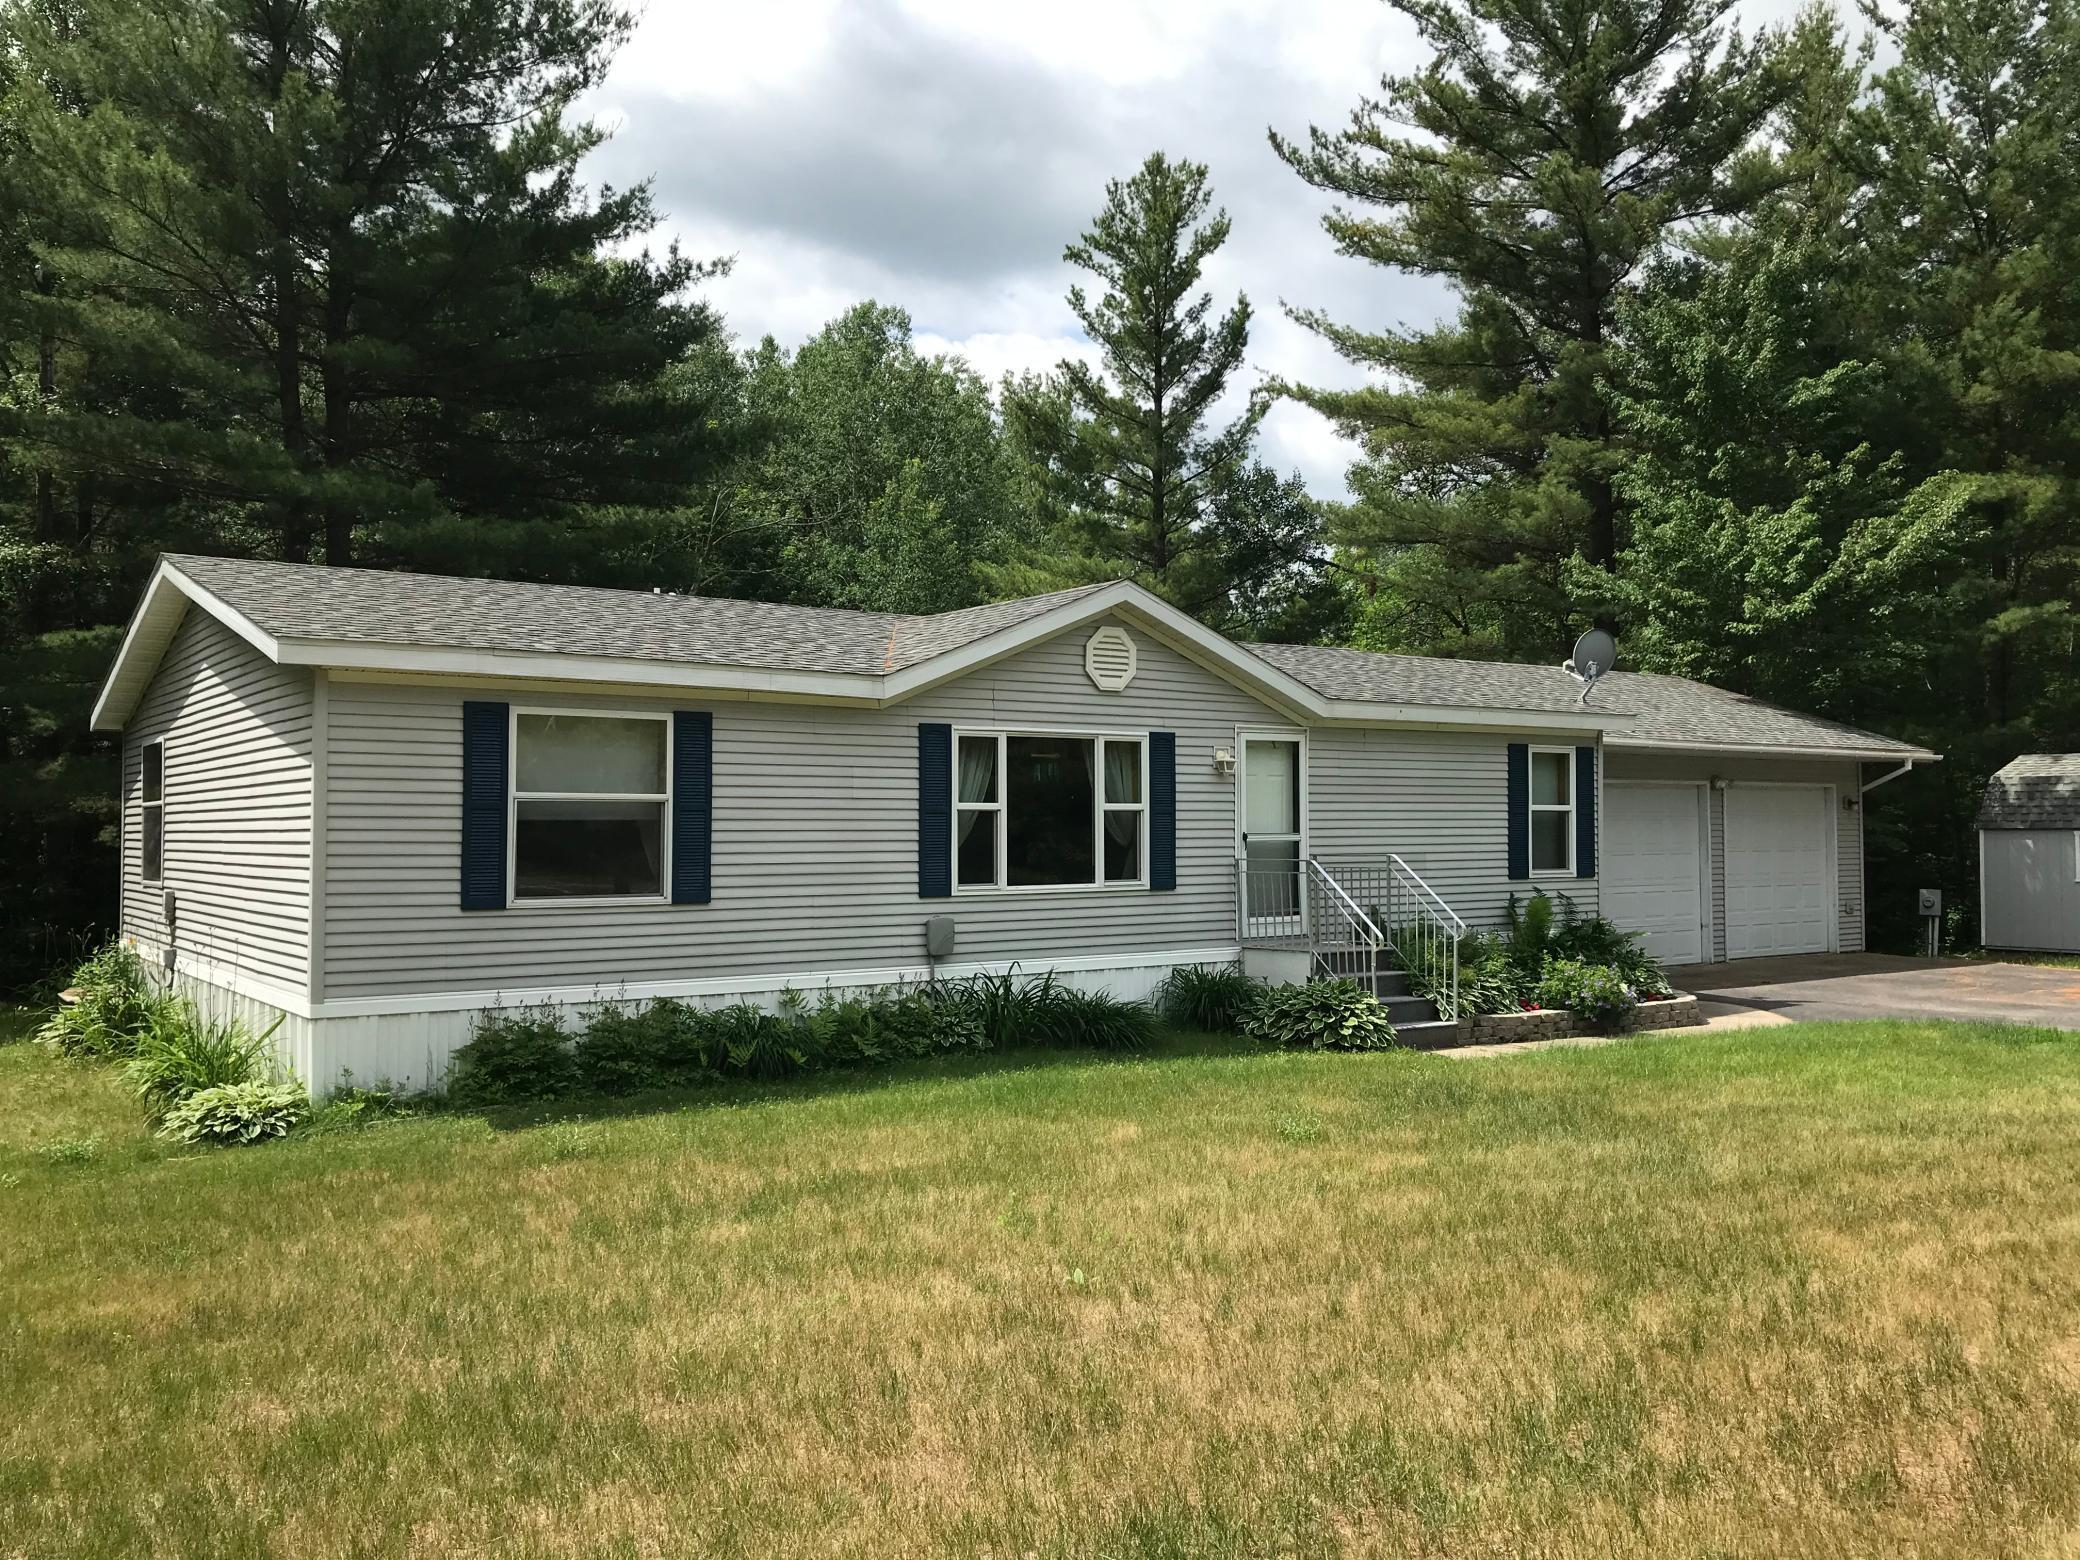 7689 Emerald Property Photo - Randall, MN real estate listing